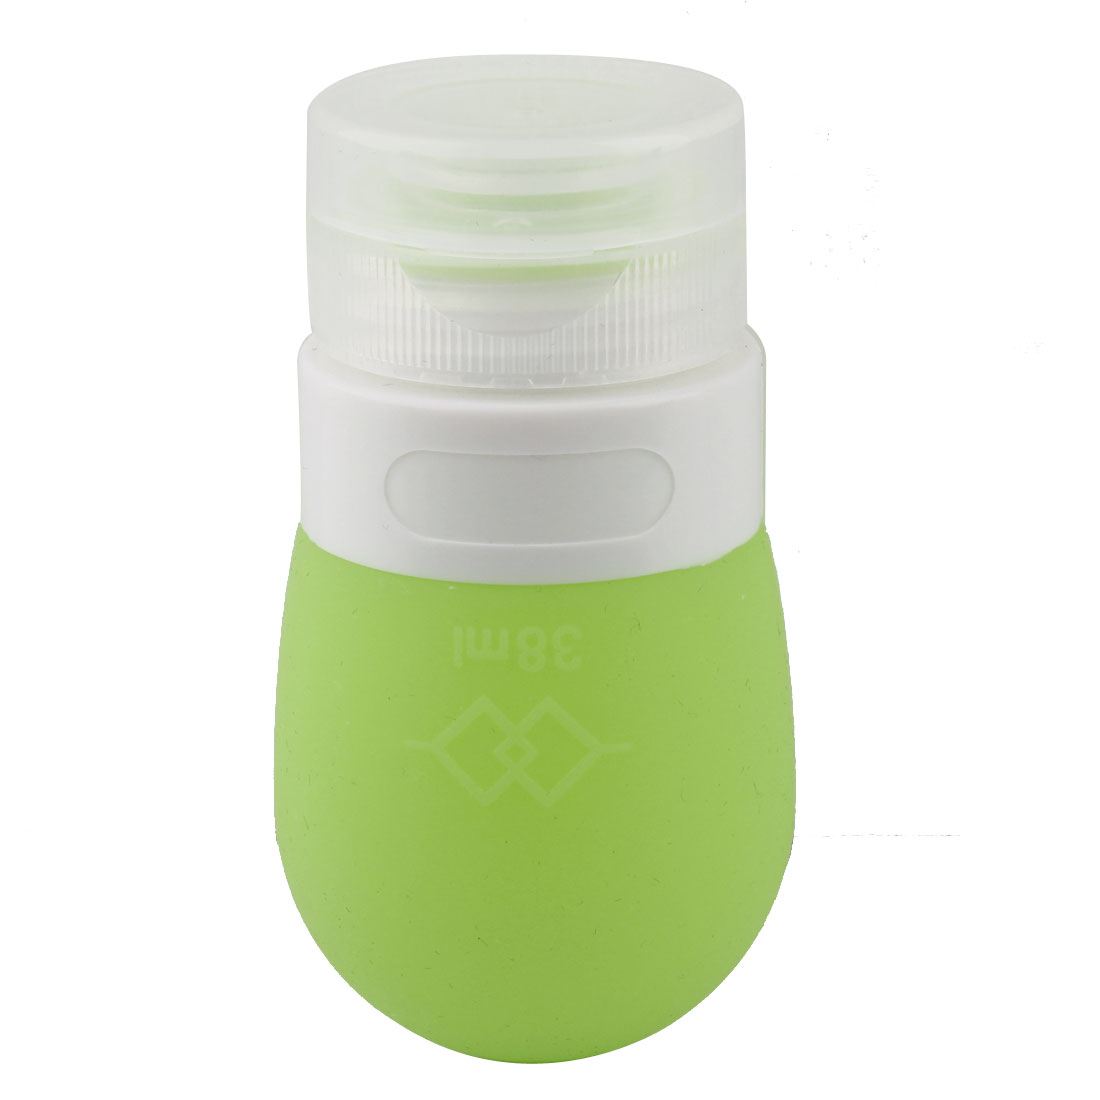 Travel Portable Shampoo Shower Gel Lotion Cosmetic Bottle Container Pale Green 38ml